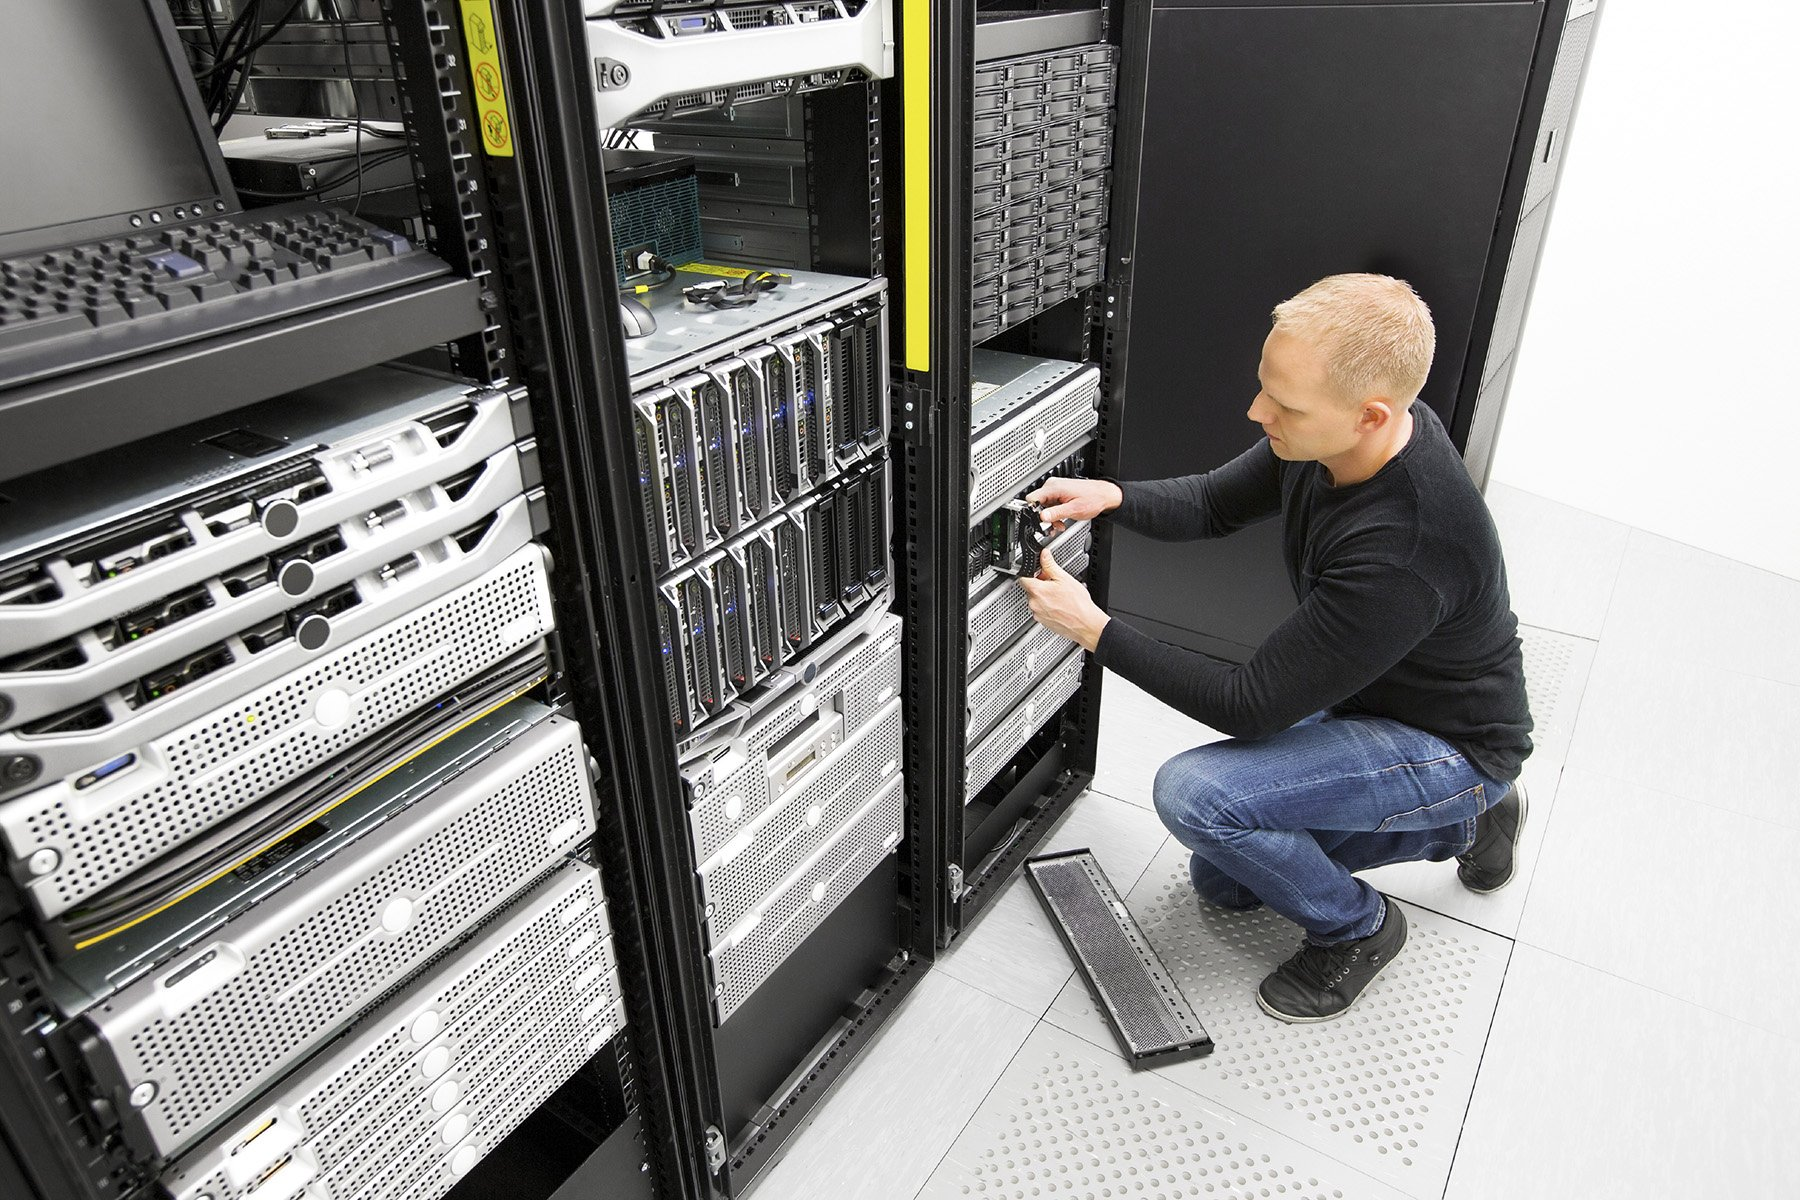 It engineer replace harddrive in datacenter